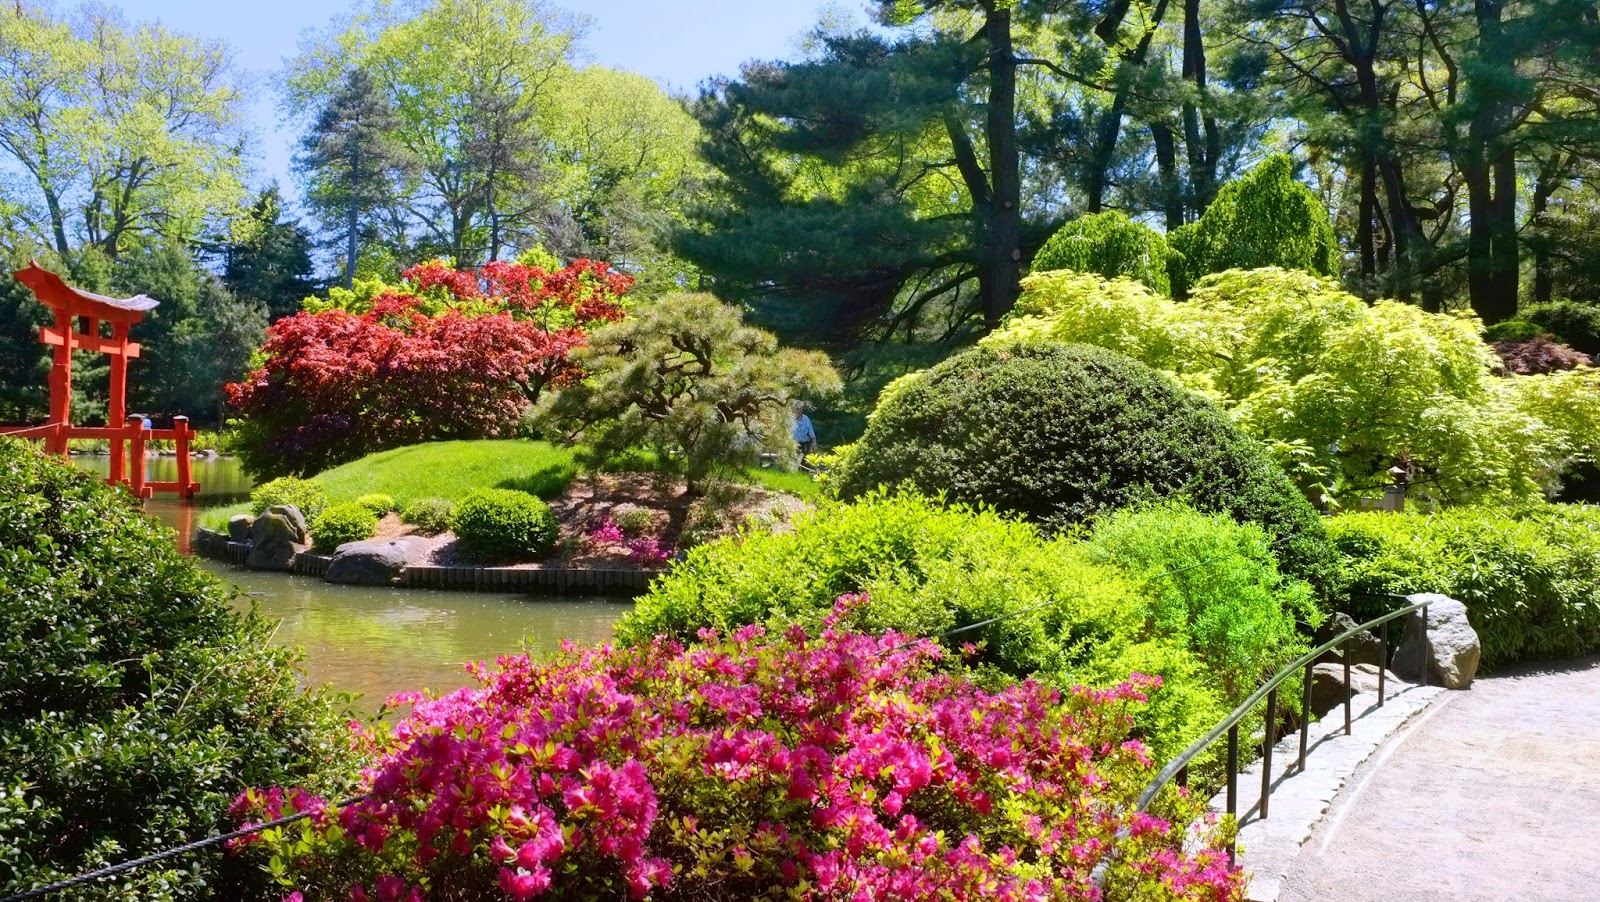 Get wickd repurpose refill relive - Brooklyn botanical garden admission ...